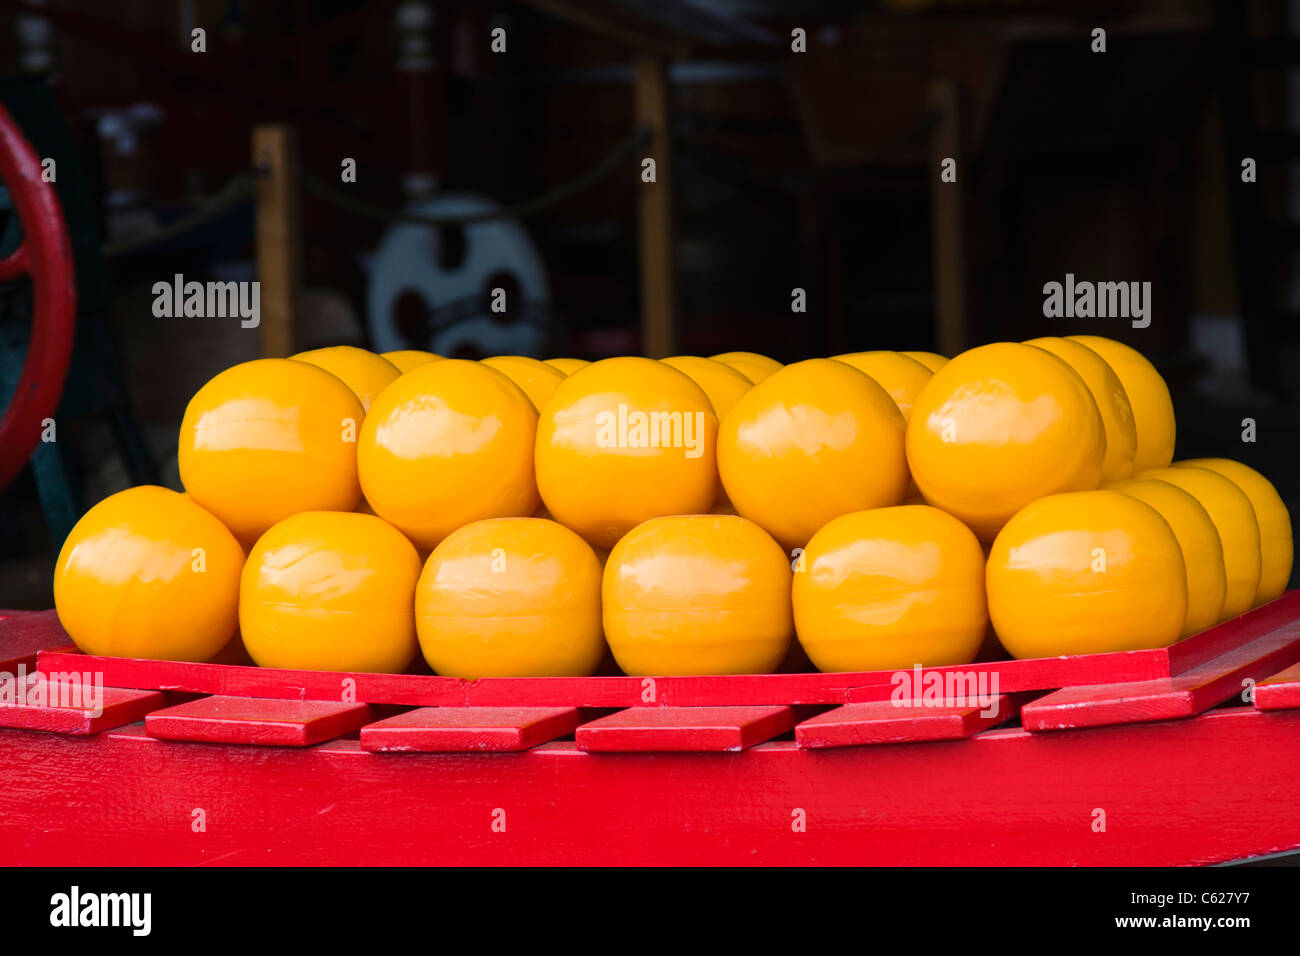 Cheese at the Cheese Market in Edam, North Holland, The Netherlands. - Stock Image